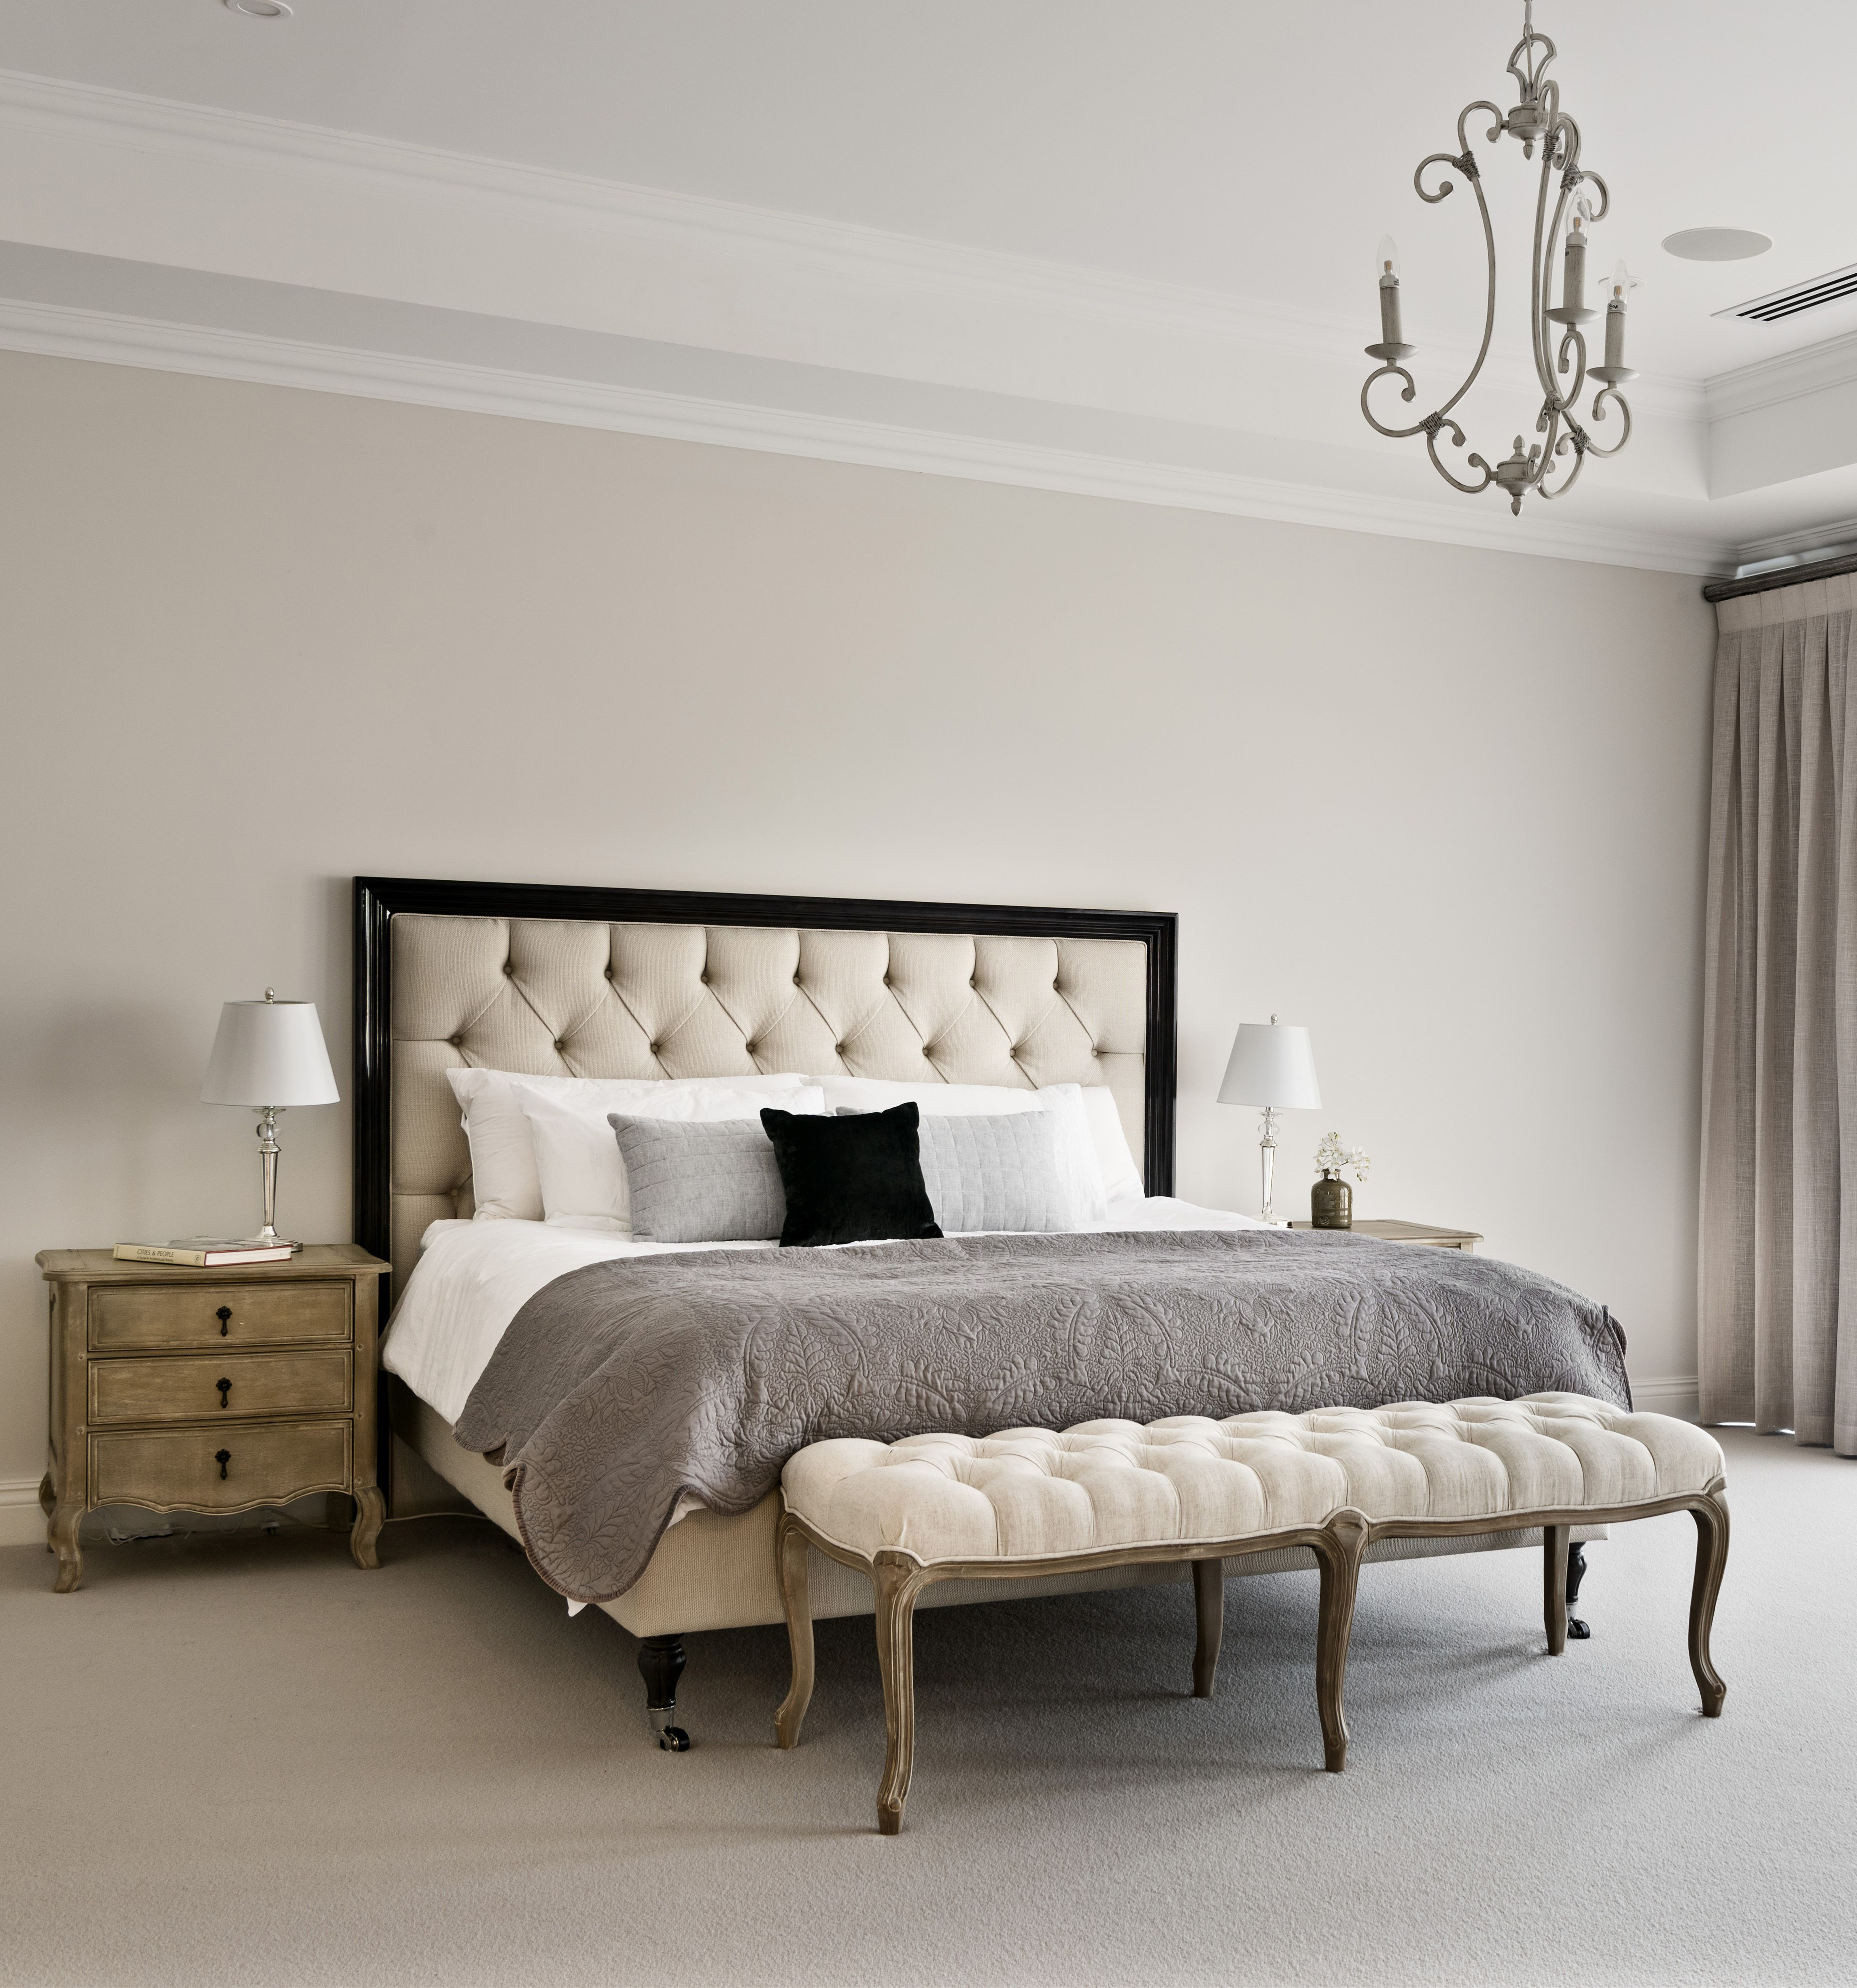 Hamptons Inspired Luxury Home Master Bedroom Robeson: Custom-designed For A Young Family, This Hamptons-style